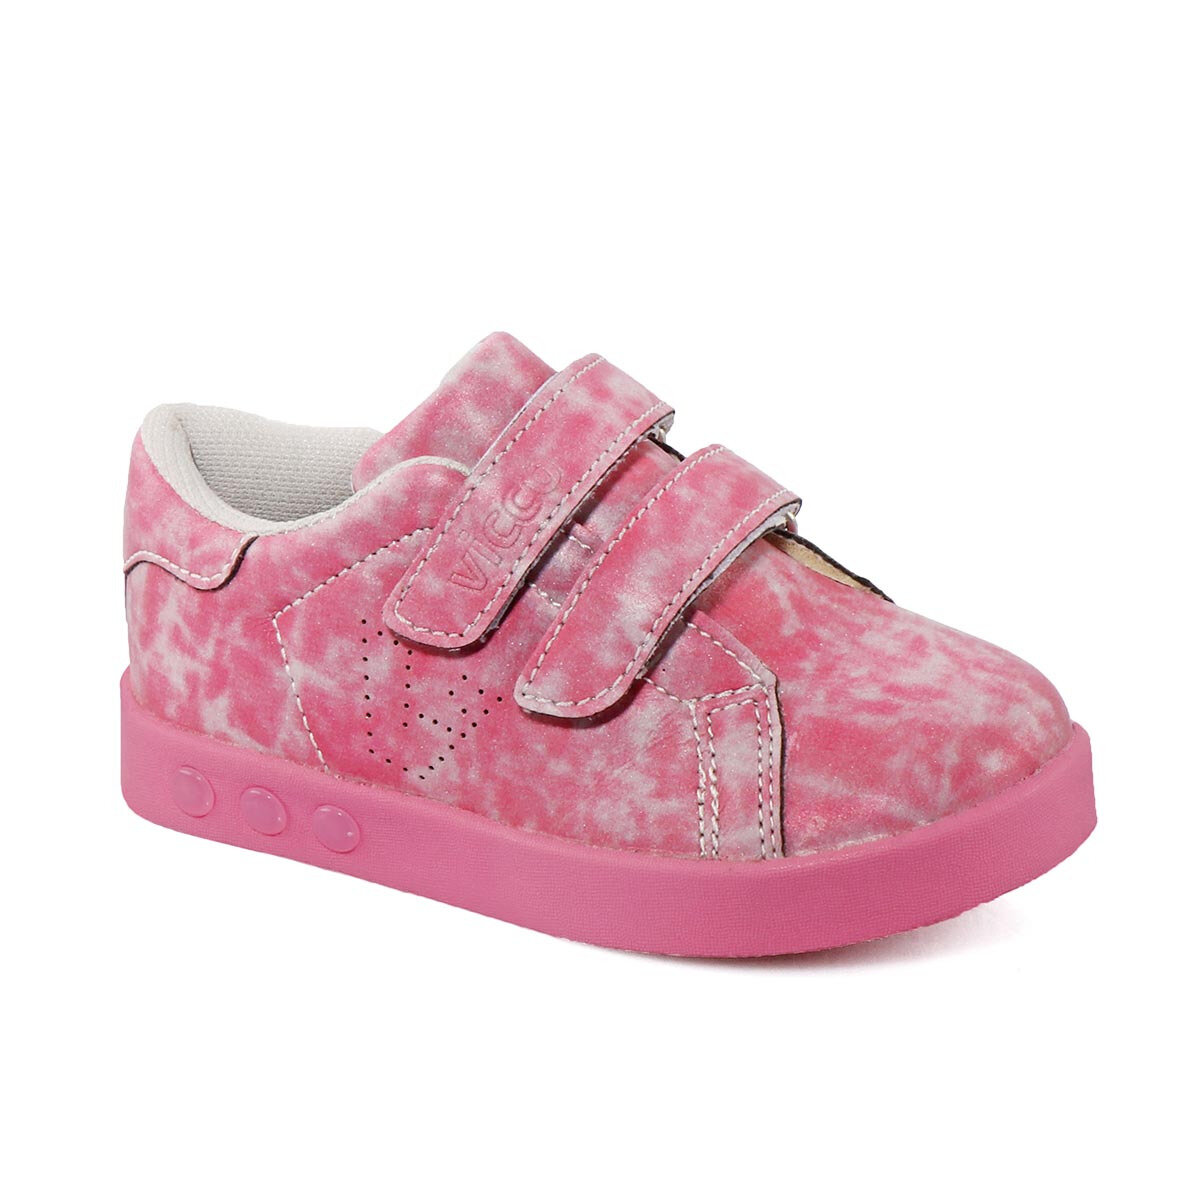 FLO 313.18Y.097 B SPORTS Pink Female Child Sneaker Shoes VICCO